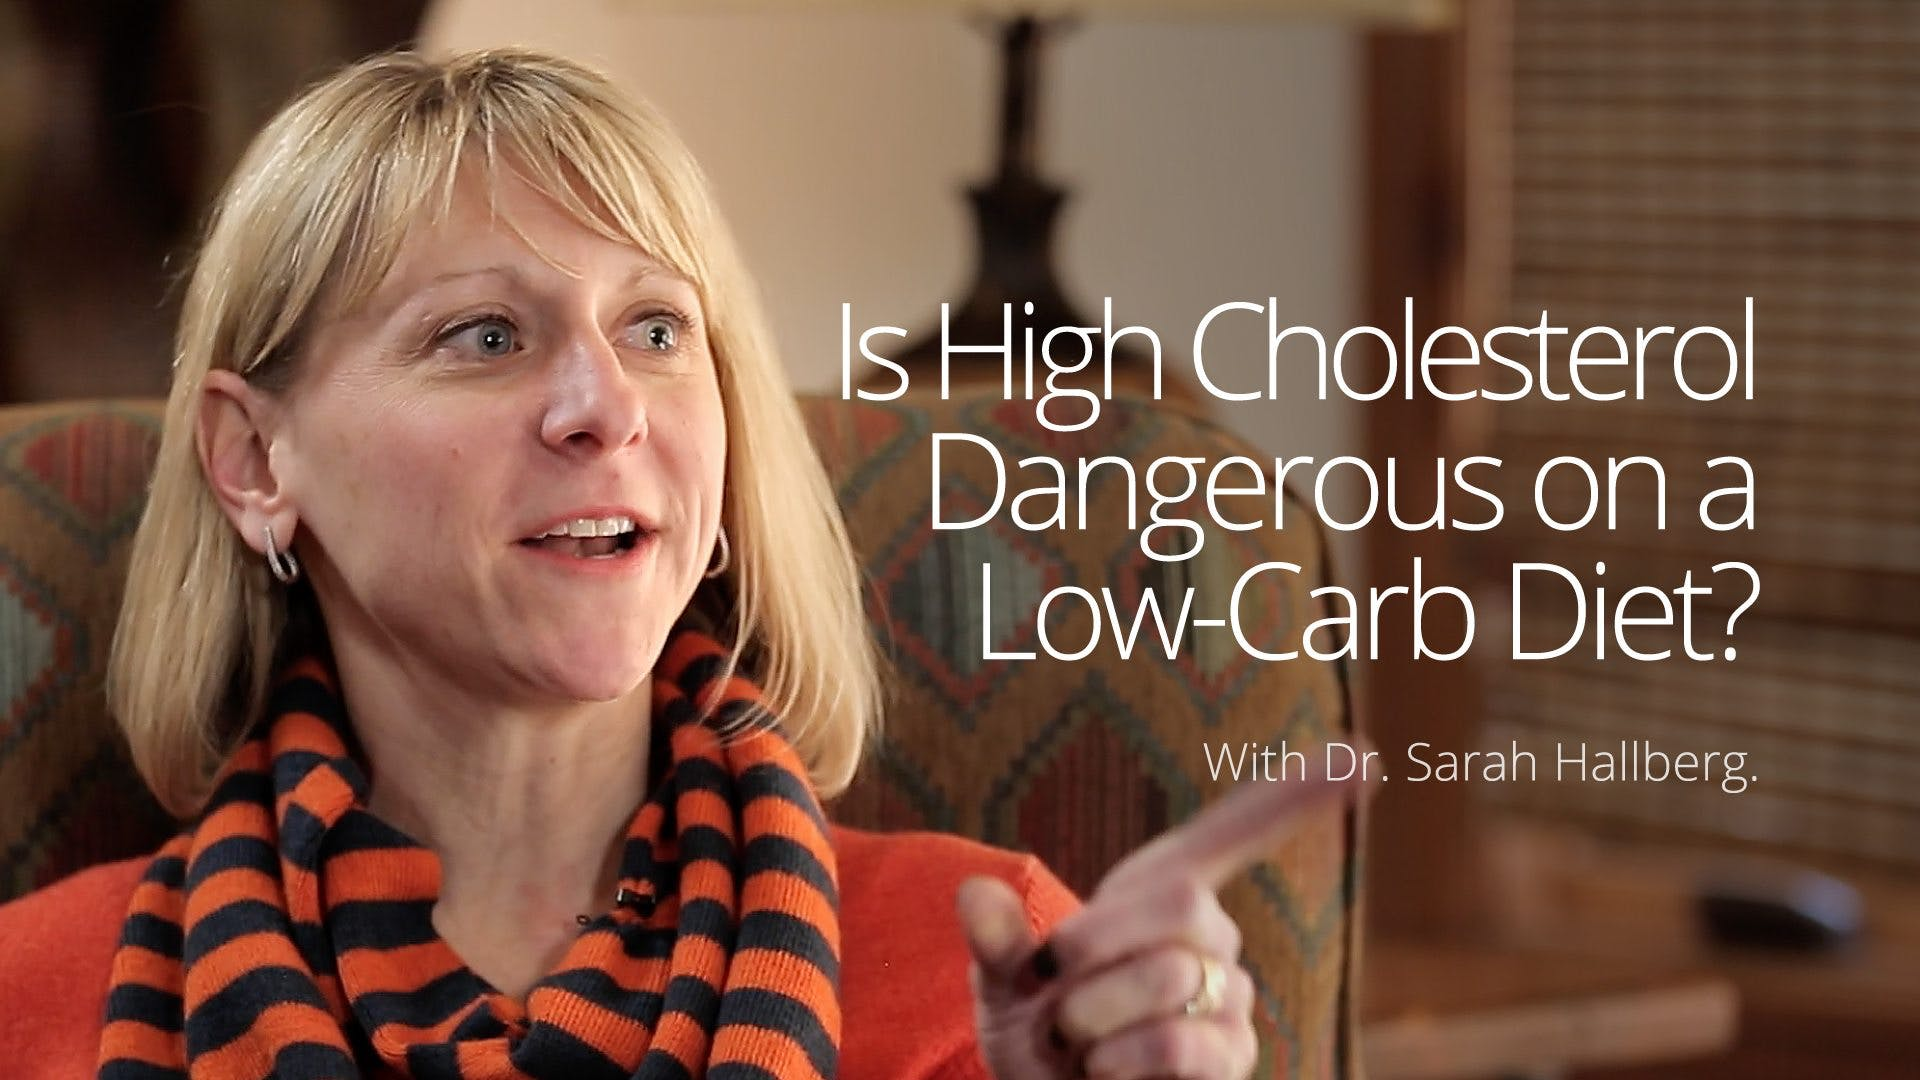 Is High Cholesterol Dangerous on a Low-Carb Diet? – Dr. Sarah Hallberg